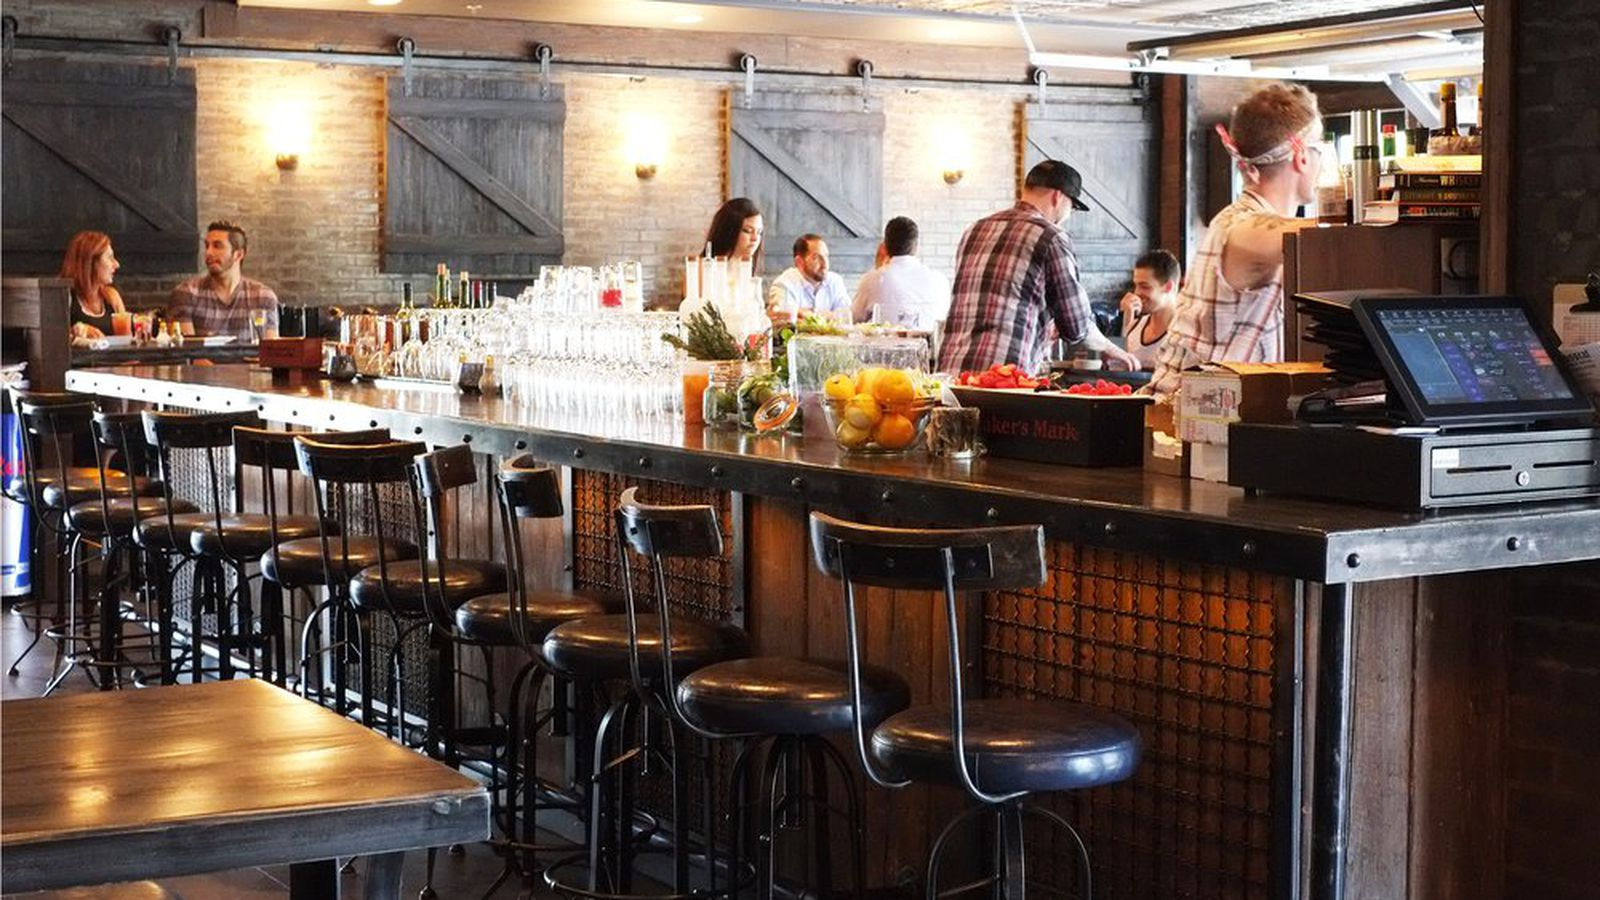 California 39 s bosscat kitchen coming to river oaks eater for Bosscat kitchen